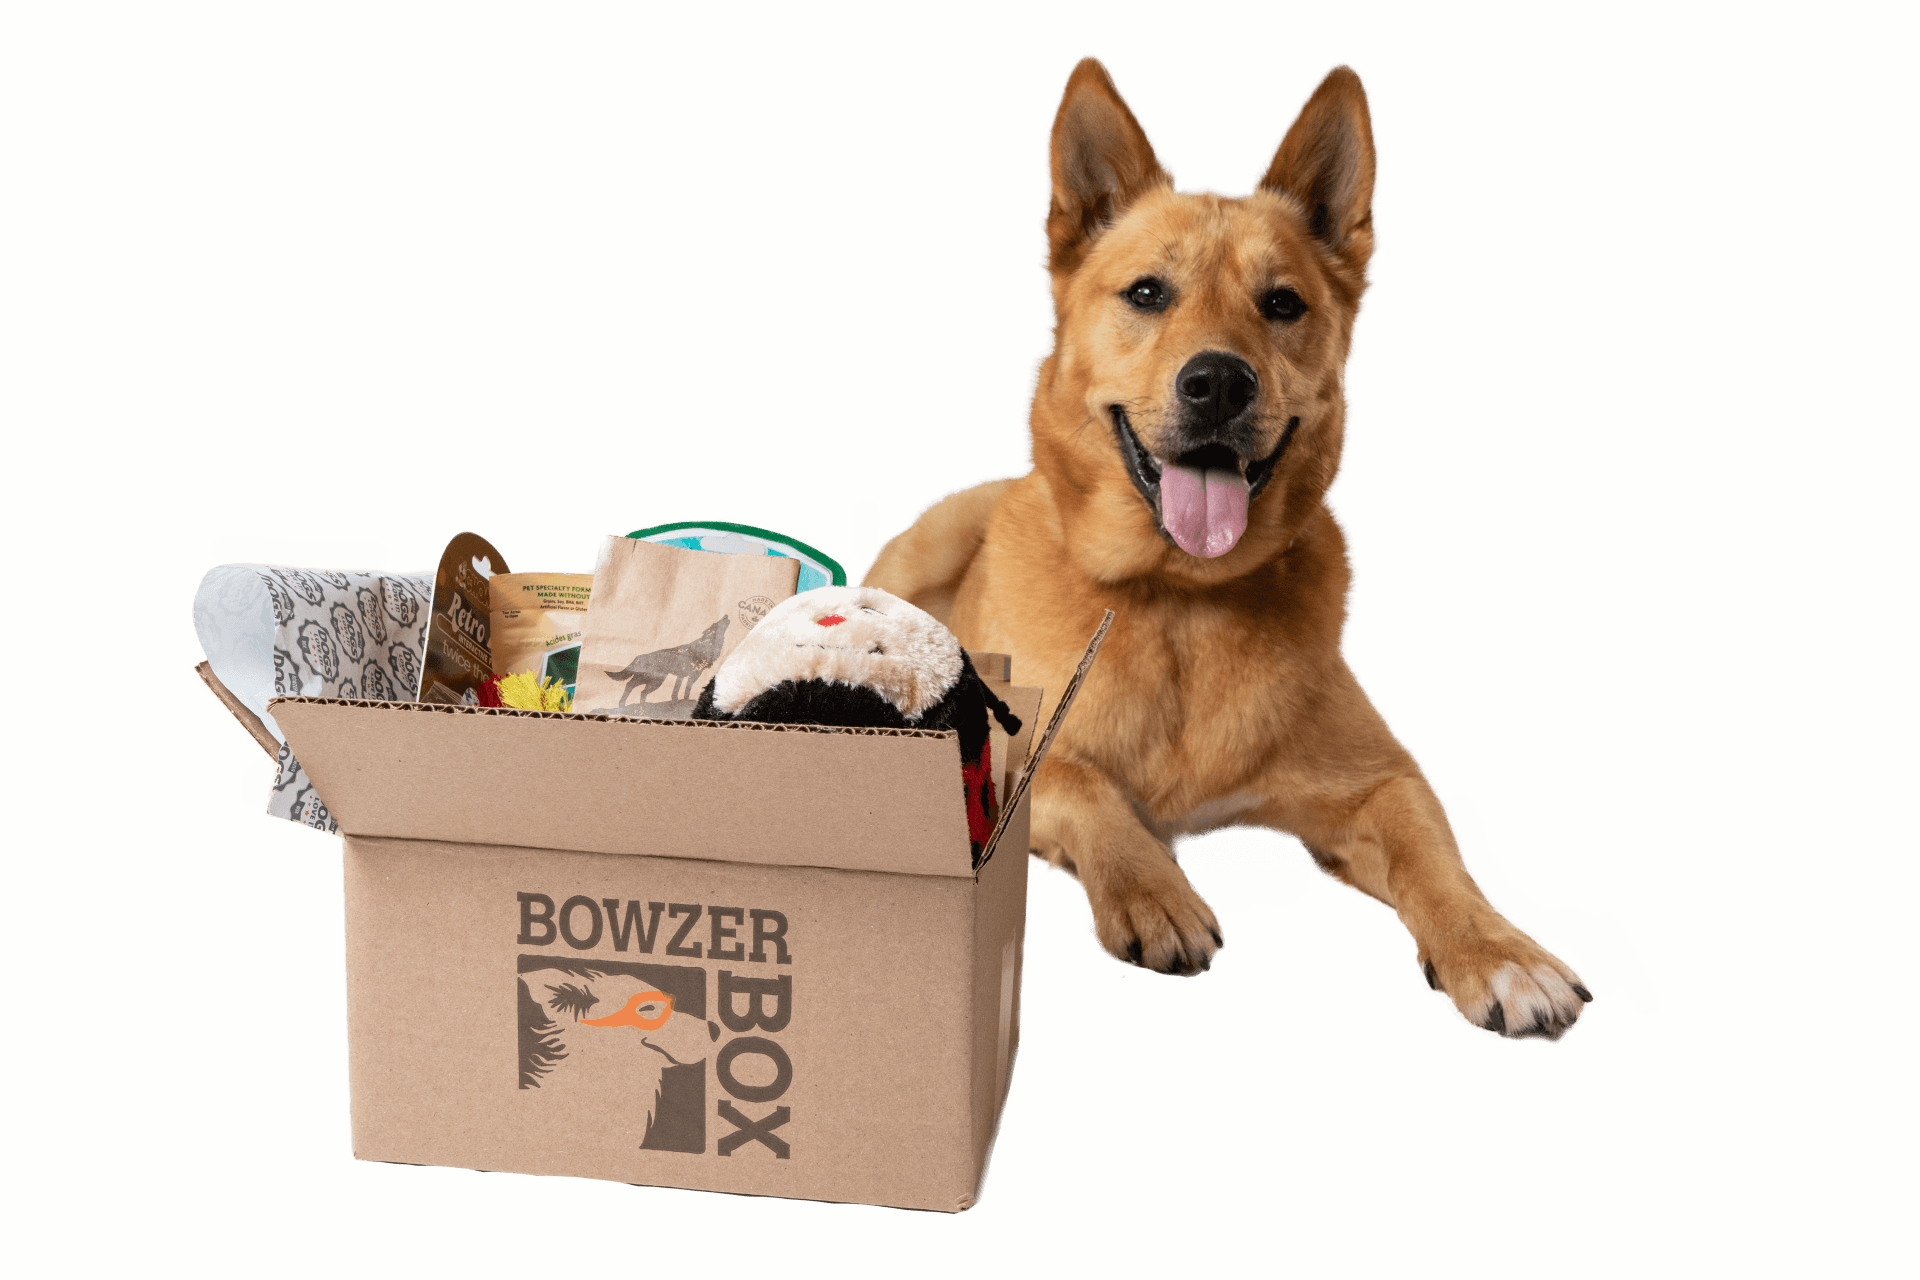 Dog happy with delivery of their Bowzer Box